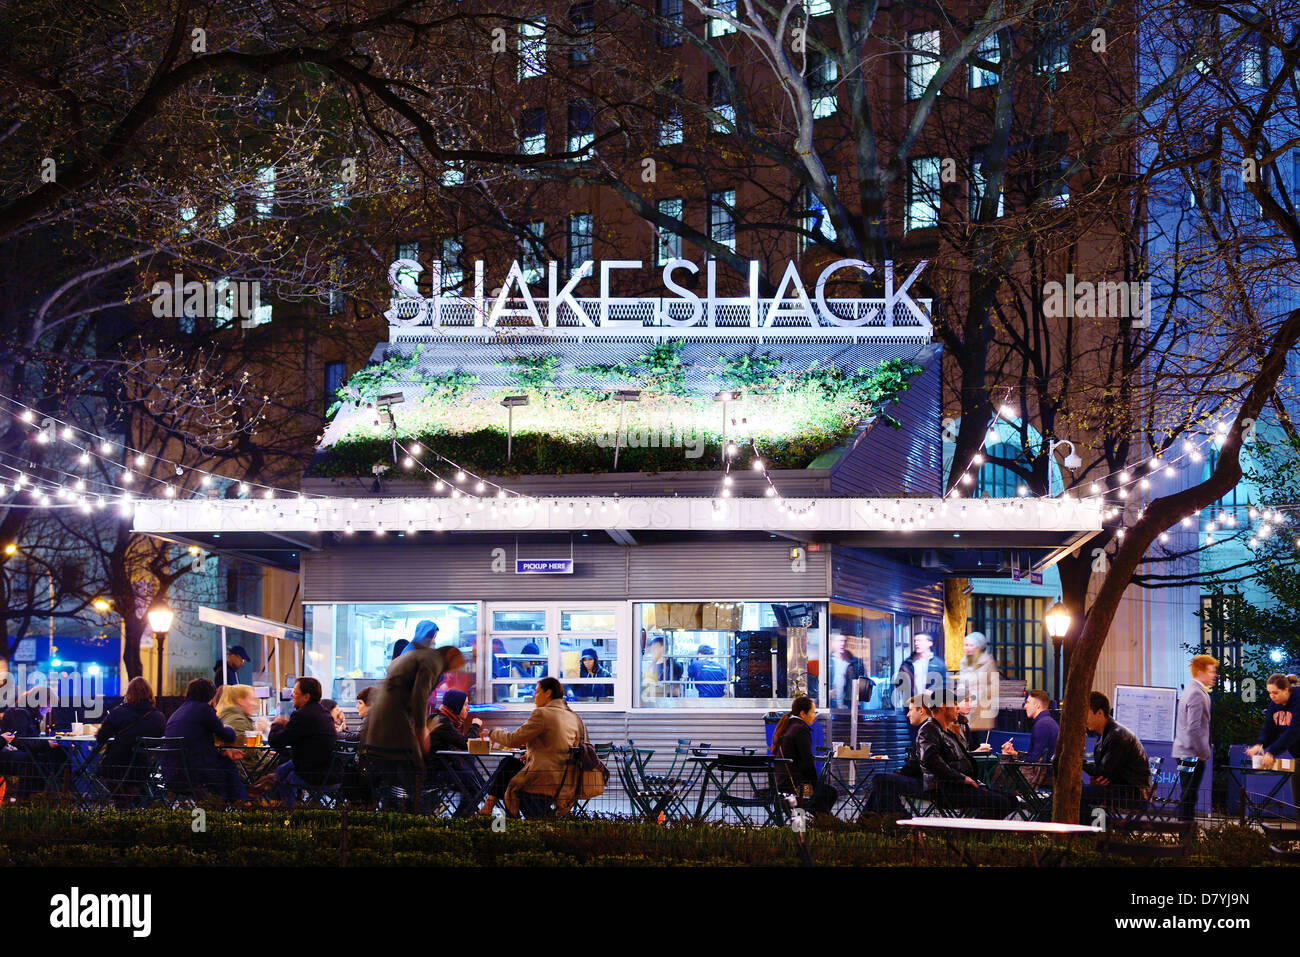 The Shake Shack diner in New York City. - Stock Image